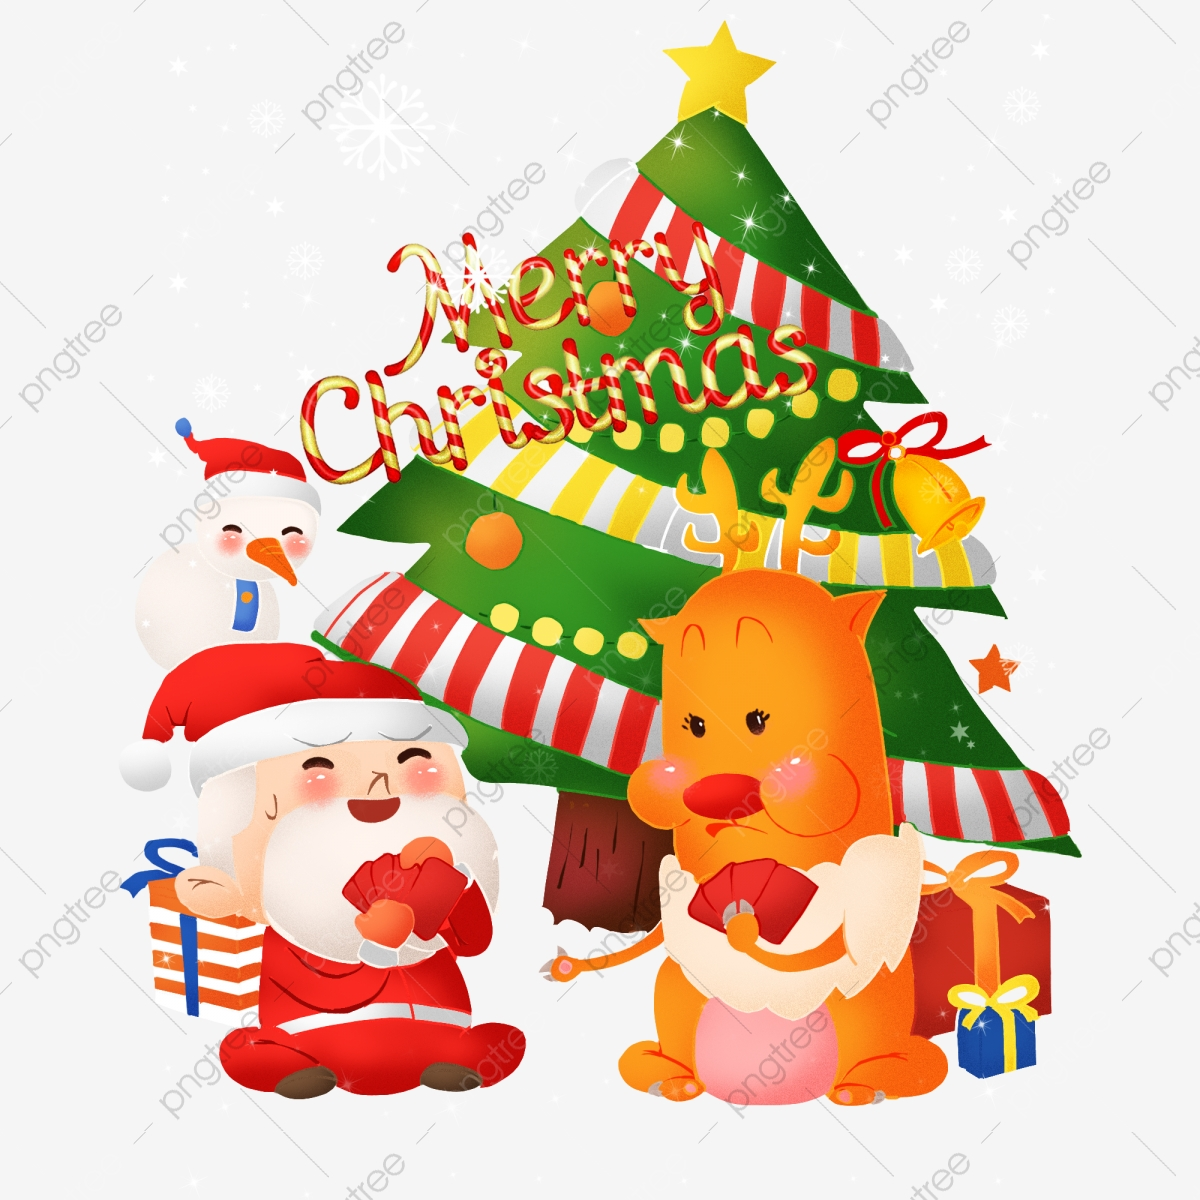 Christmas Eve Clipart.Christmas Christmas Eve Christmas Lovely Cartoon Santa